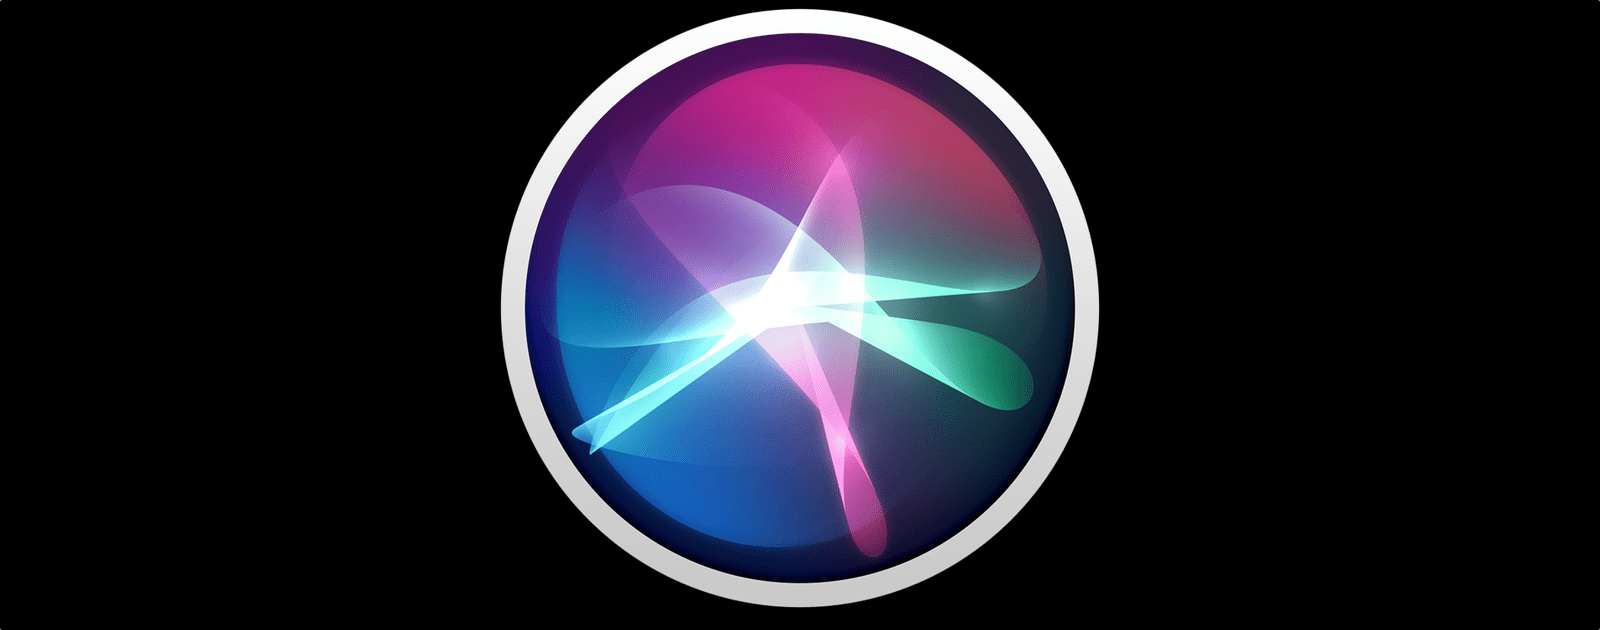 Siri on macOS Isn't a Good Feature